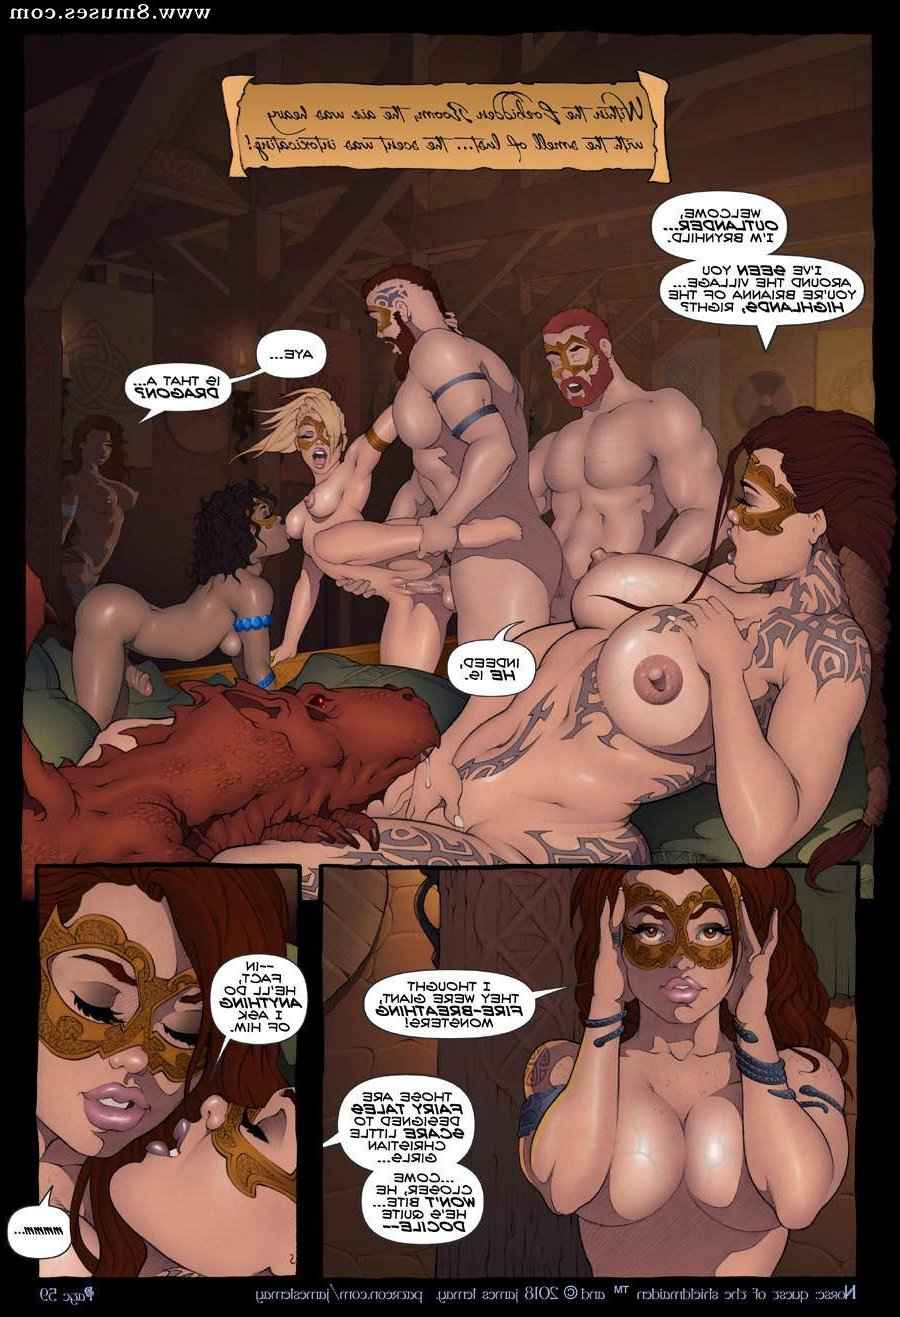 James-Lemay-Comics/Norse-Quest-of-the-Shield-Maiden Norse_Quest_of_the_Shield_Maiden__8muses_-_Sex_and_Porn_Comics_59.jpg